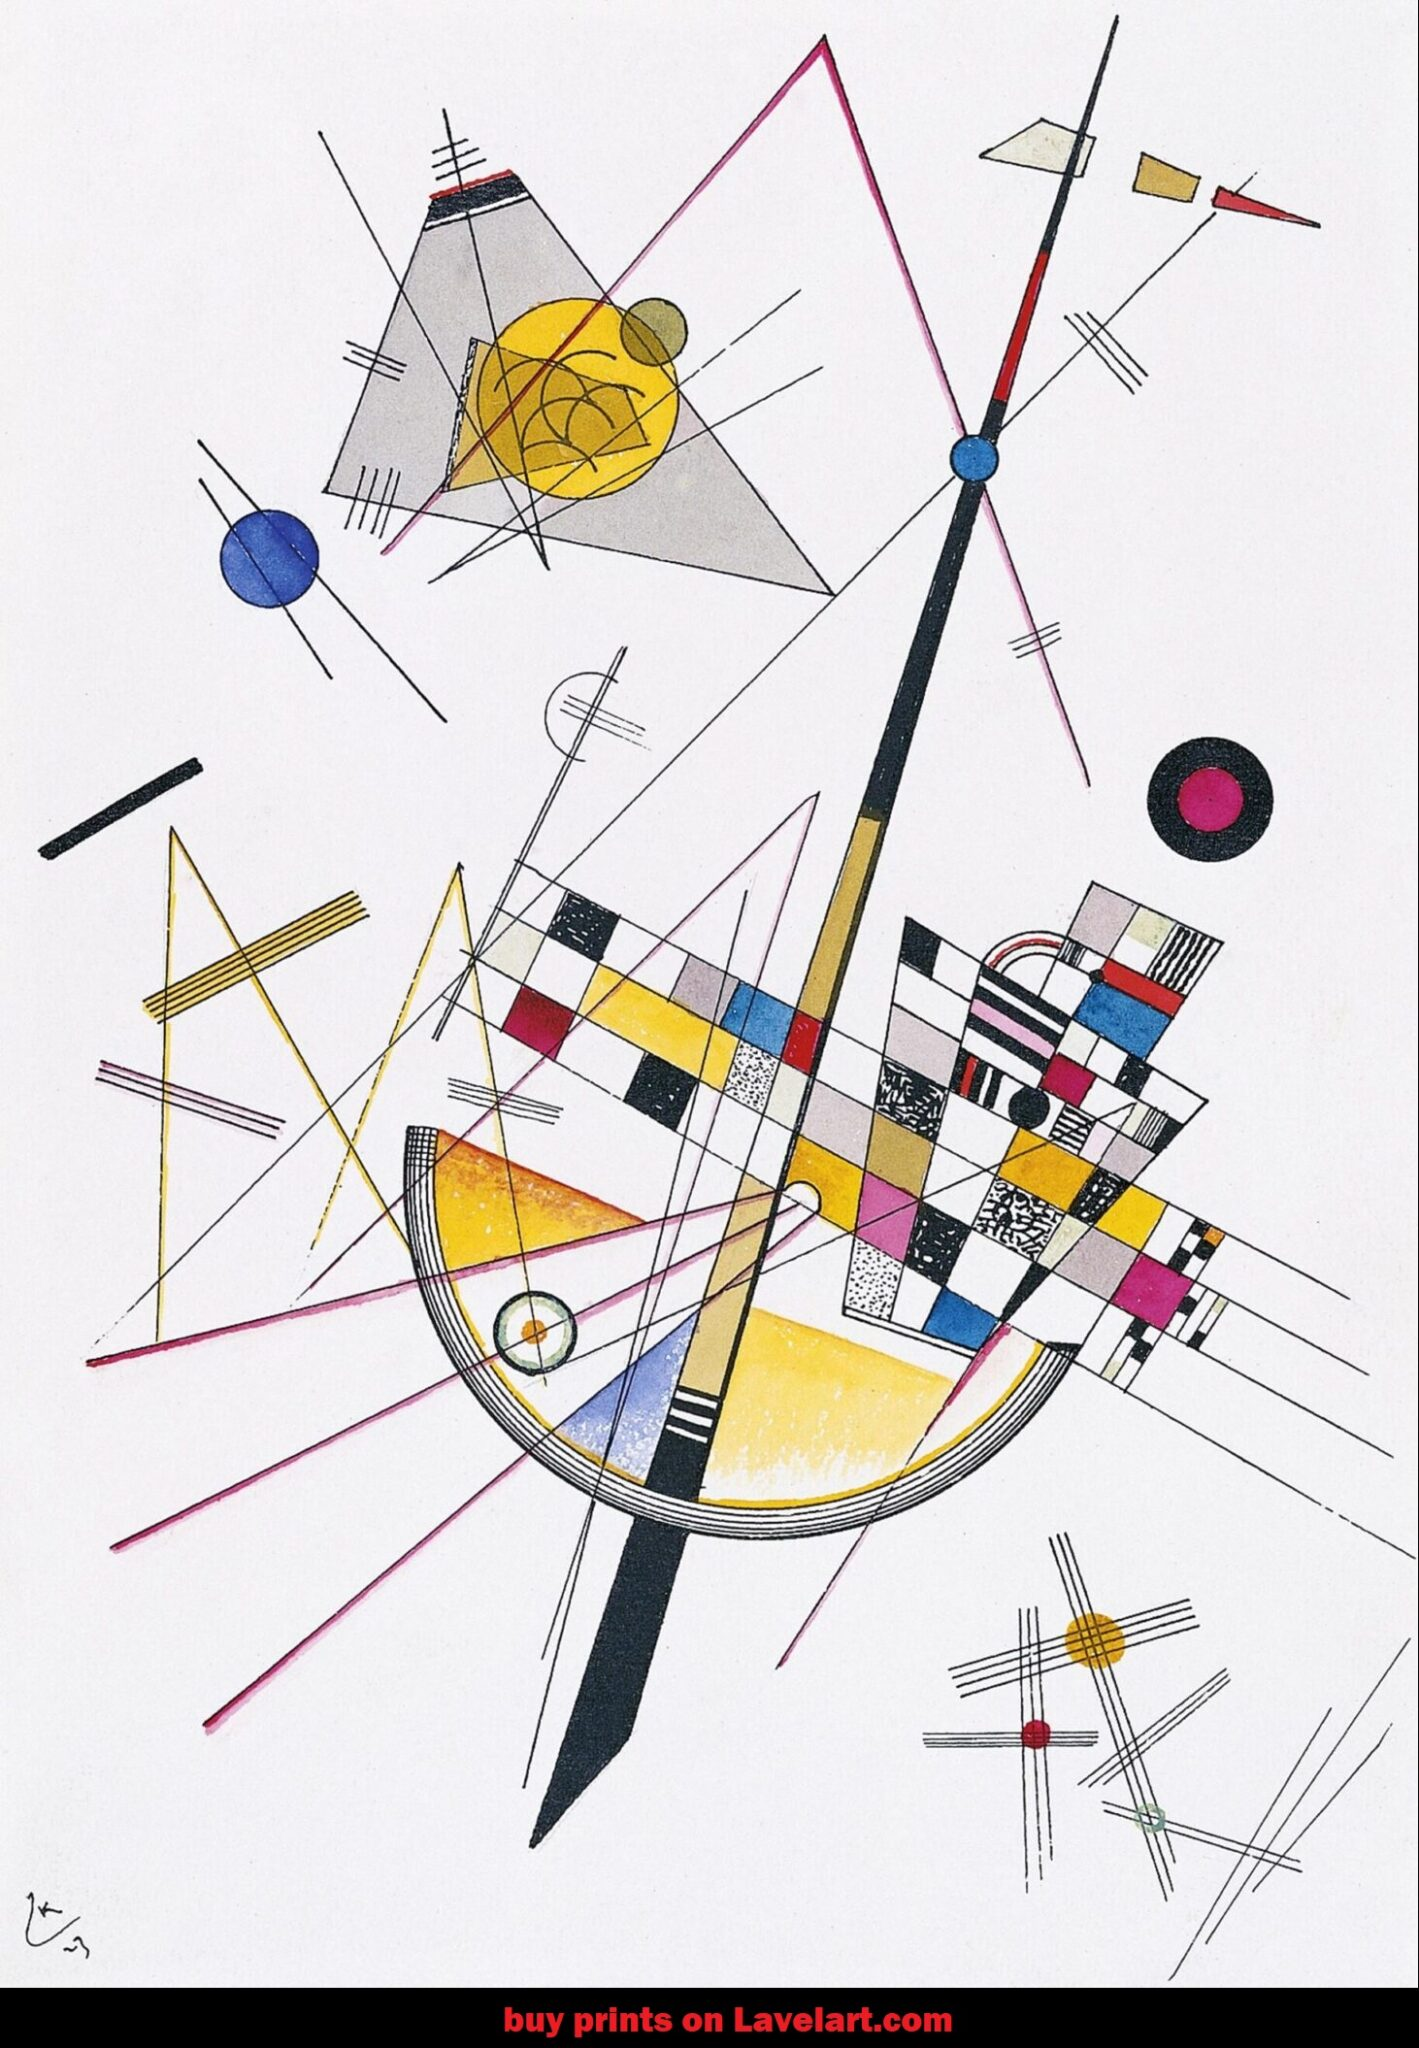 Delicate Tension No 85 by Wassily Kandinsky canvas print photo image